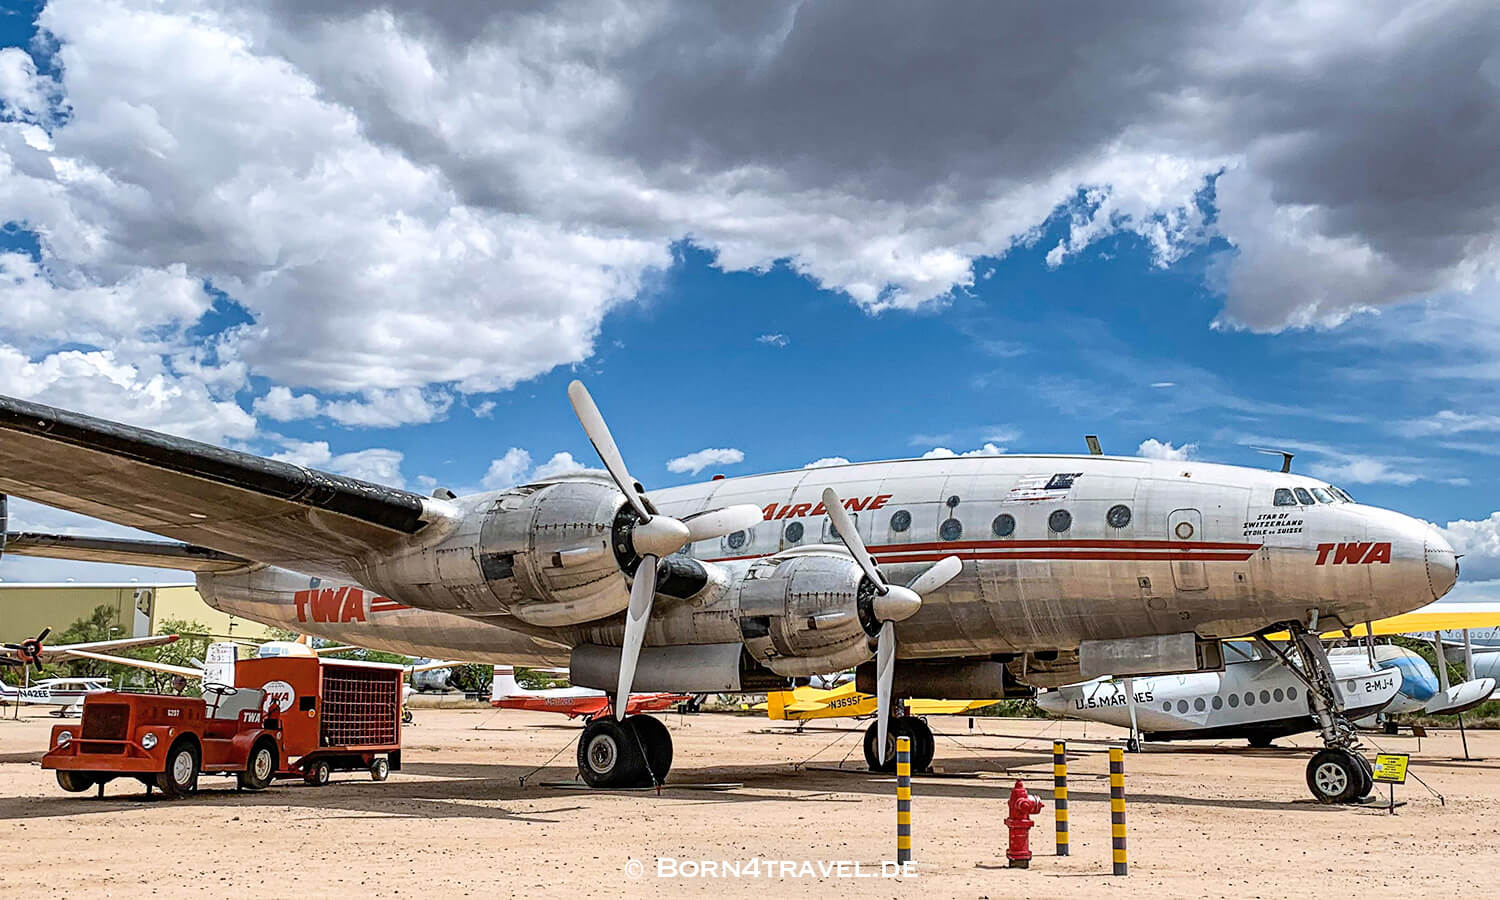 Lockheed L-049 Constellation , Star of Switzerland, PIMA AIR & SPACE MUSEUM,Arizona,USA,born4travel.de